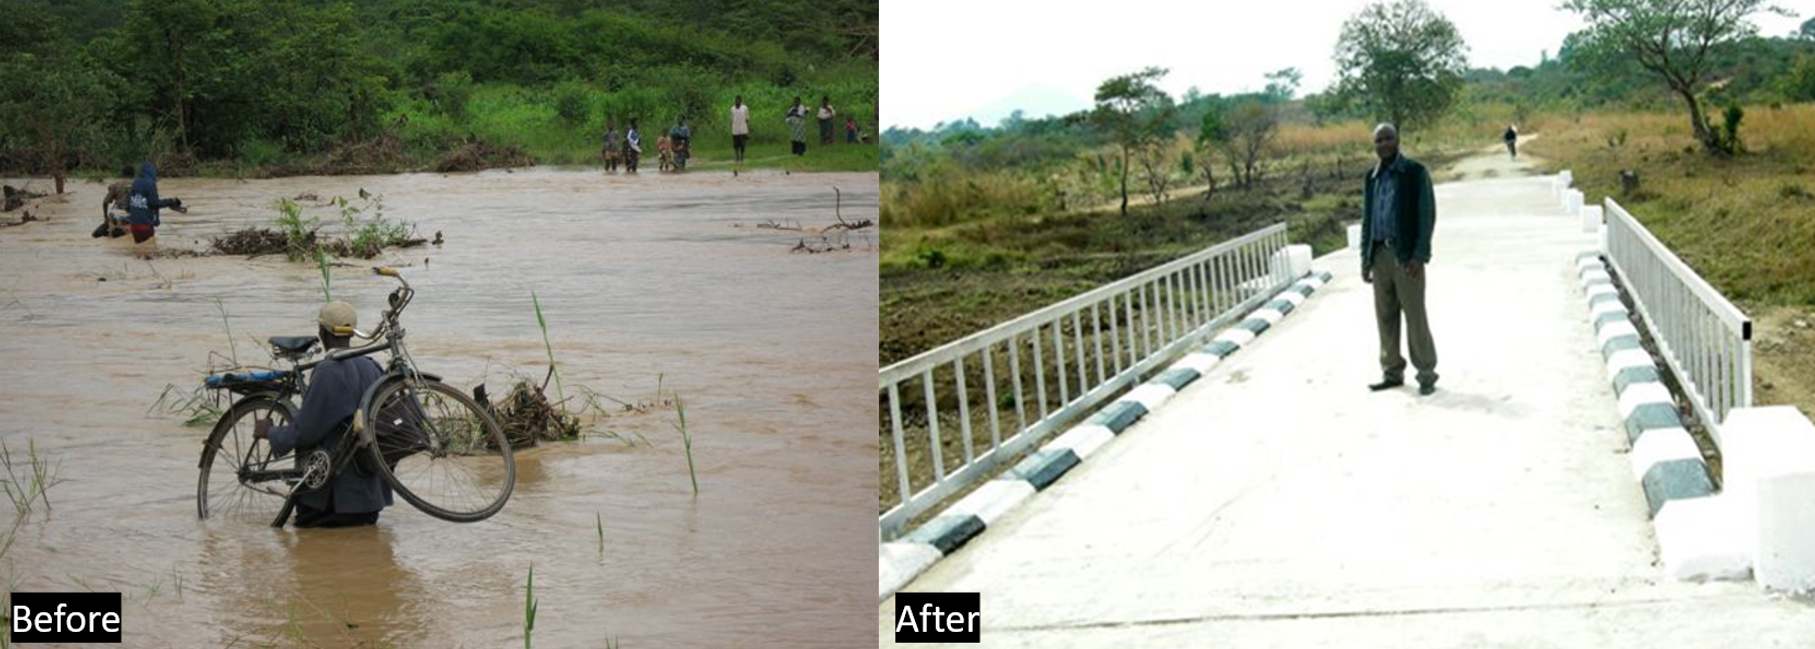 Before and after the bridge was constructed